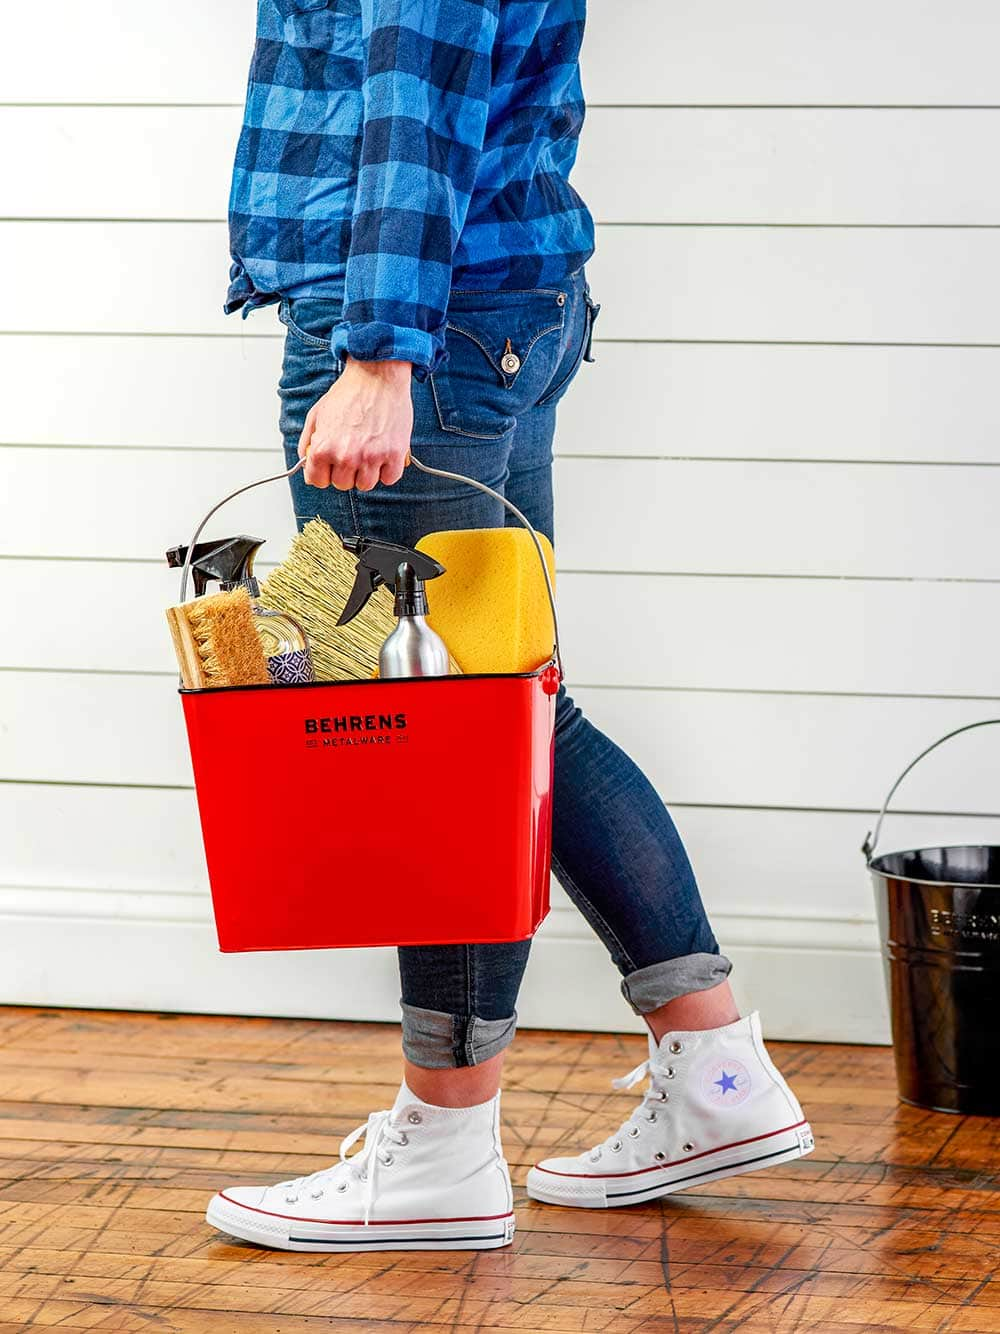 Person holding a red metal pail filled with cleaning supplies